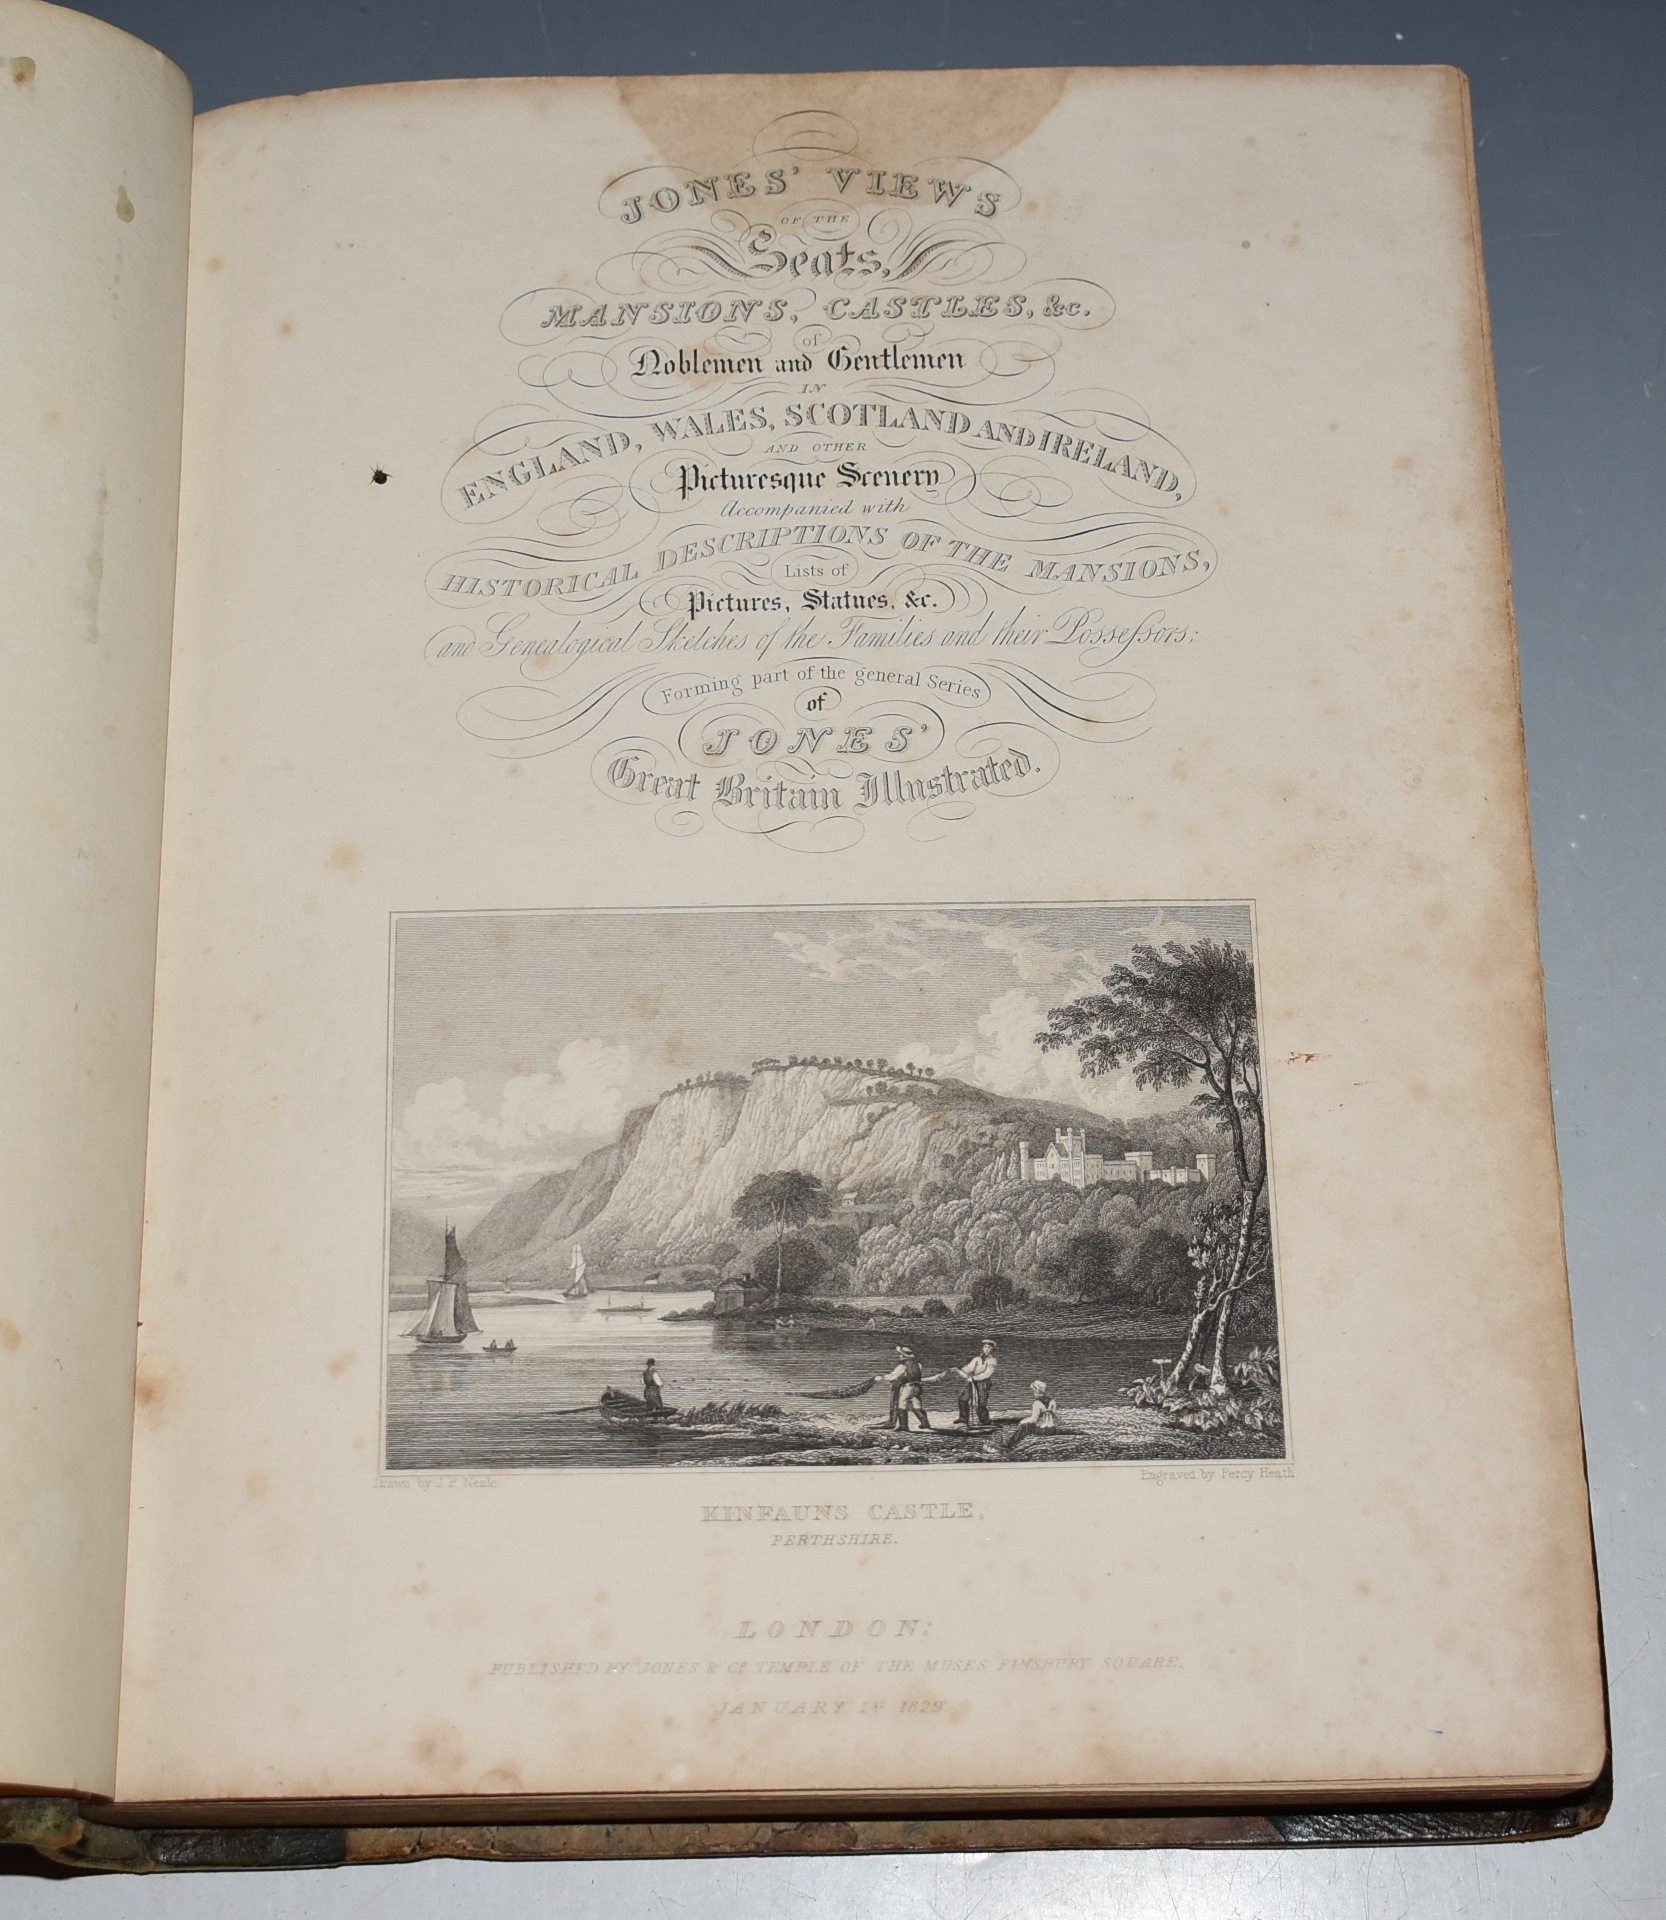 Image for Jones' Views of the Seats, Mansions, Castles, &c. of Noblemen and Gentlemen in England, Wales, Scotland and Ireland; And Other Picturesque Scenery, Accompanied with historical descriptions of the Mansions, list of the pictures, statues &c. and Genealogical Sketches of the Families and their Possessors; Forming part of the general series of Jones' Great Britain Illustrated.